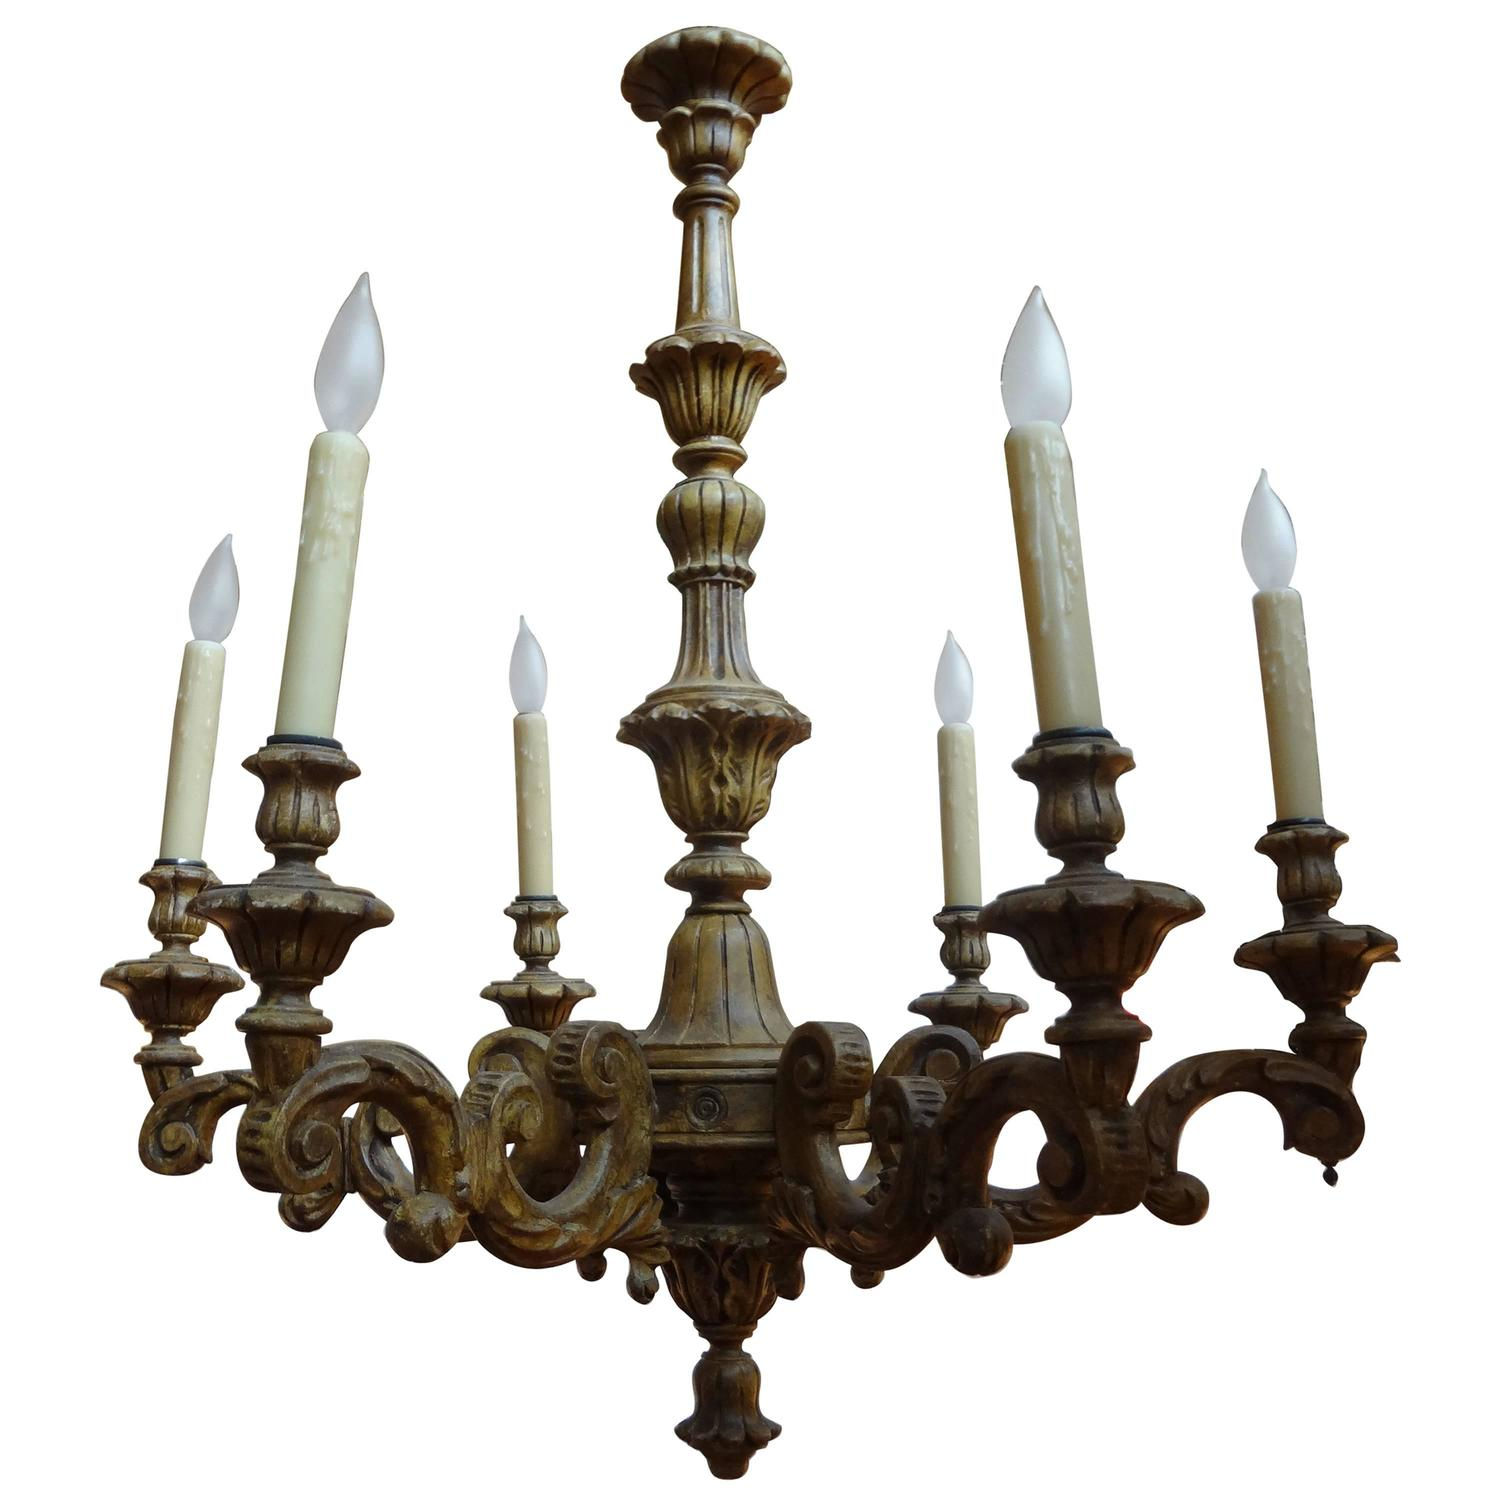 Antique Italian Six-Arm Carved Wood Chandelier - Antique Antler Chandelier With Carved Wood Figurine